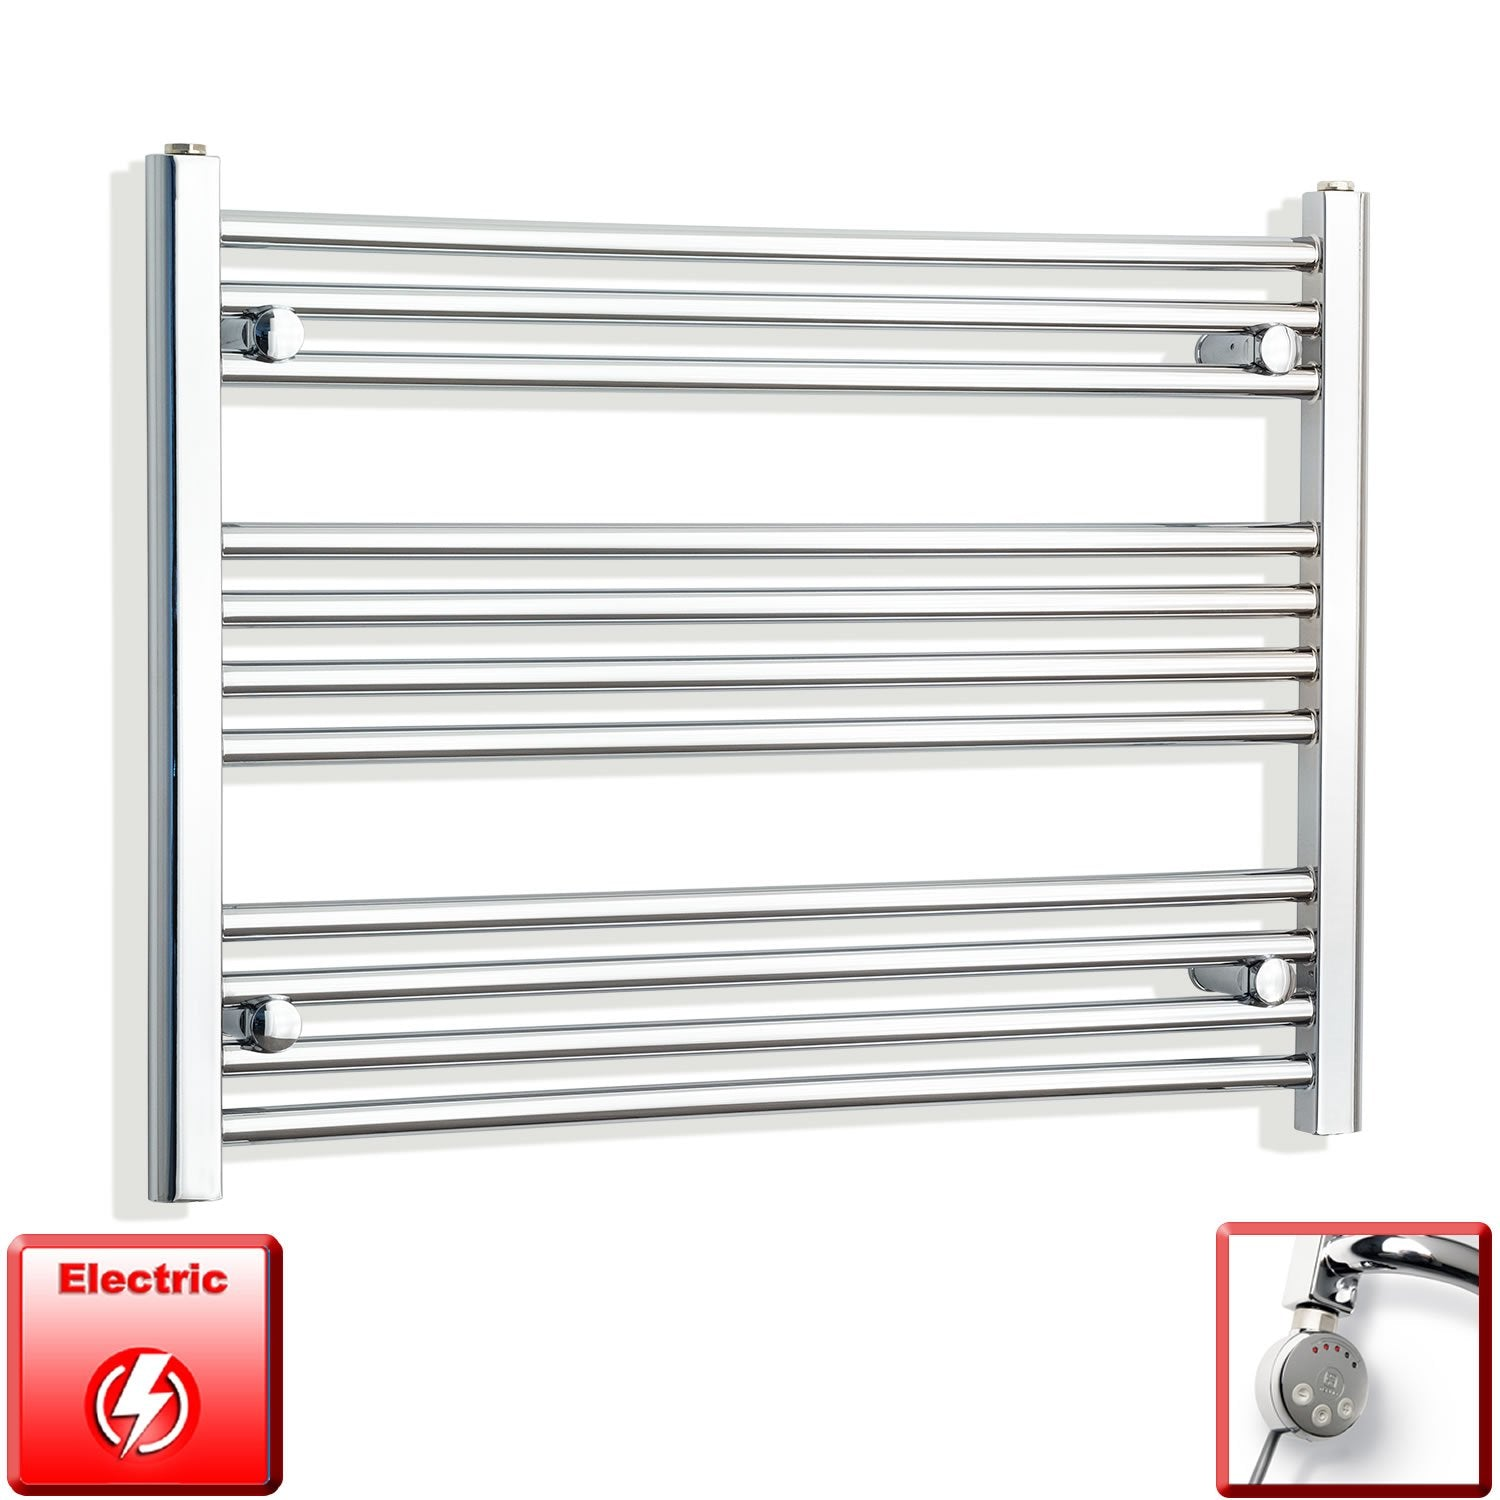 900mm Wide 600mm High Flat Chrome Pre-Filled Electric Heated Towel Rail Radiator HTR,MEG Thermostatic Element